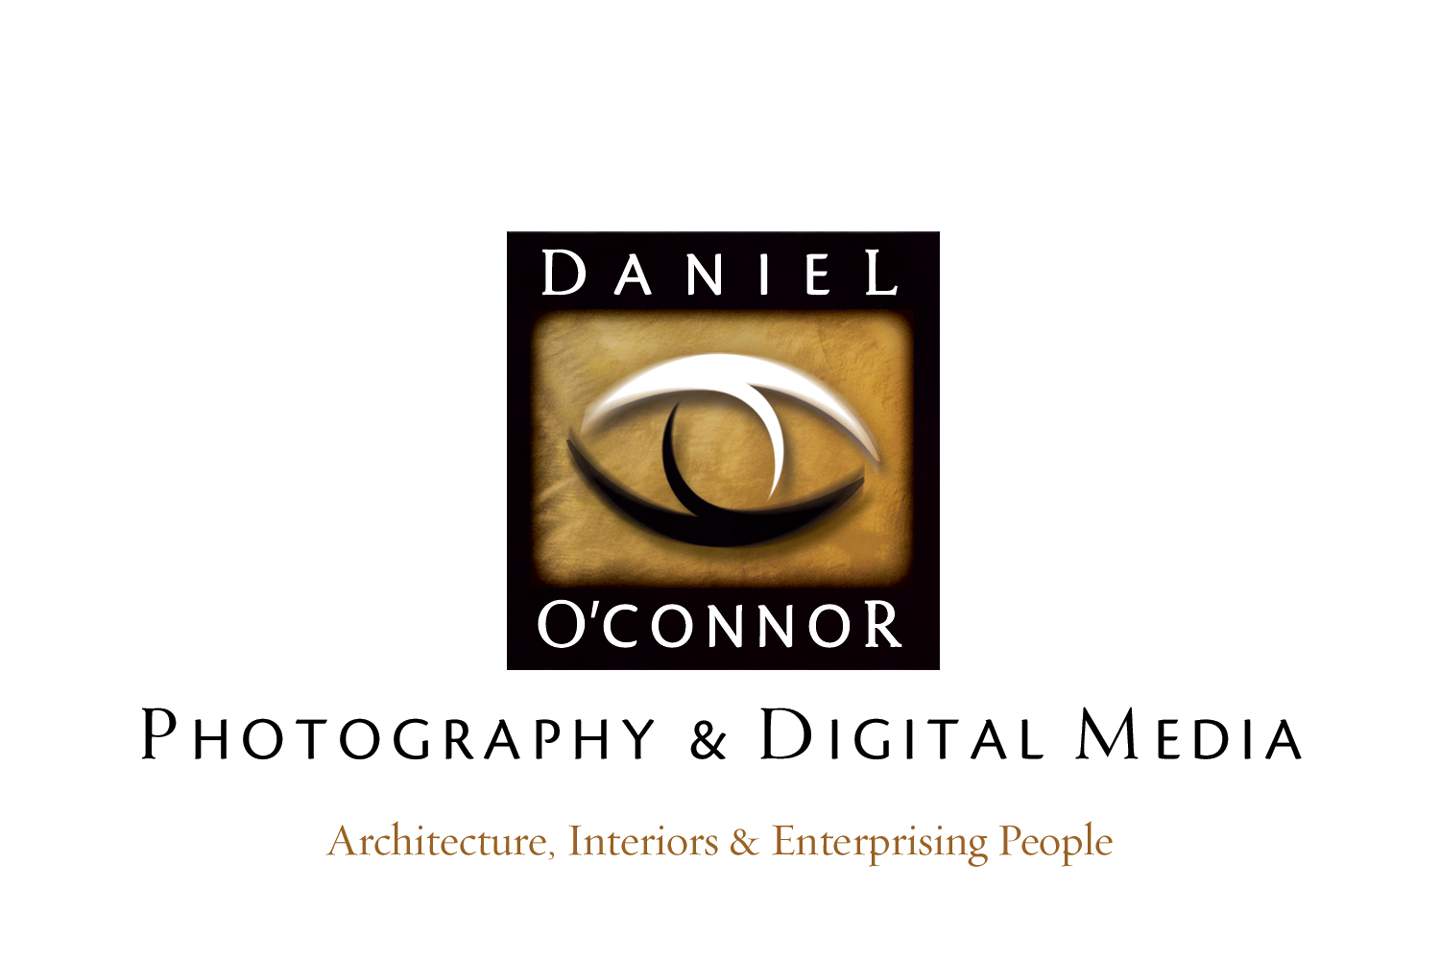 2013 Daniel O'Connor / All Rights Reserved